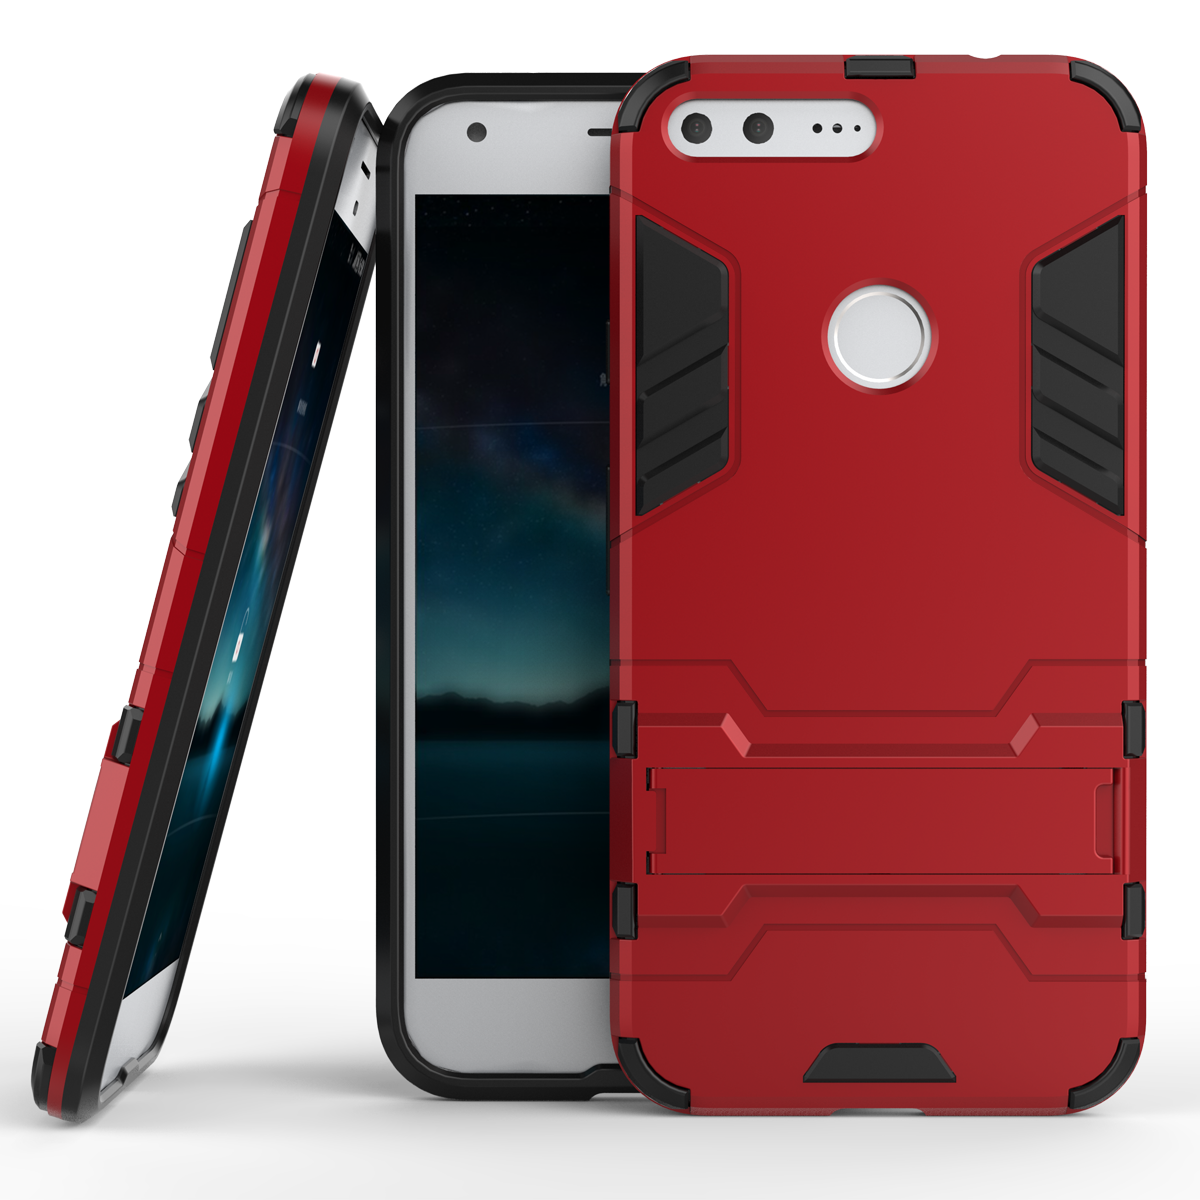 Rmor kickstand tough dual layer protective case for google pixel 5 0inch red p201610311524232580